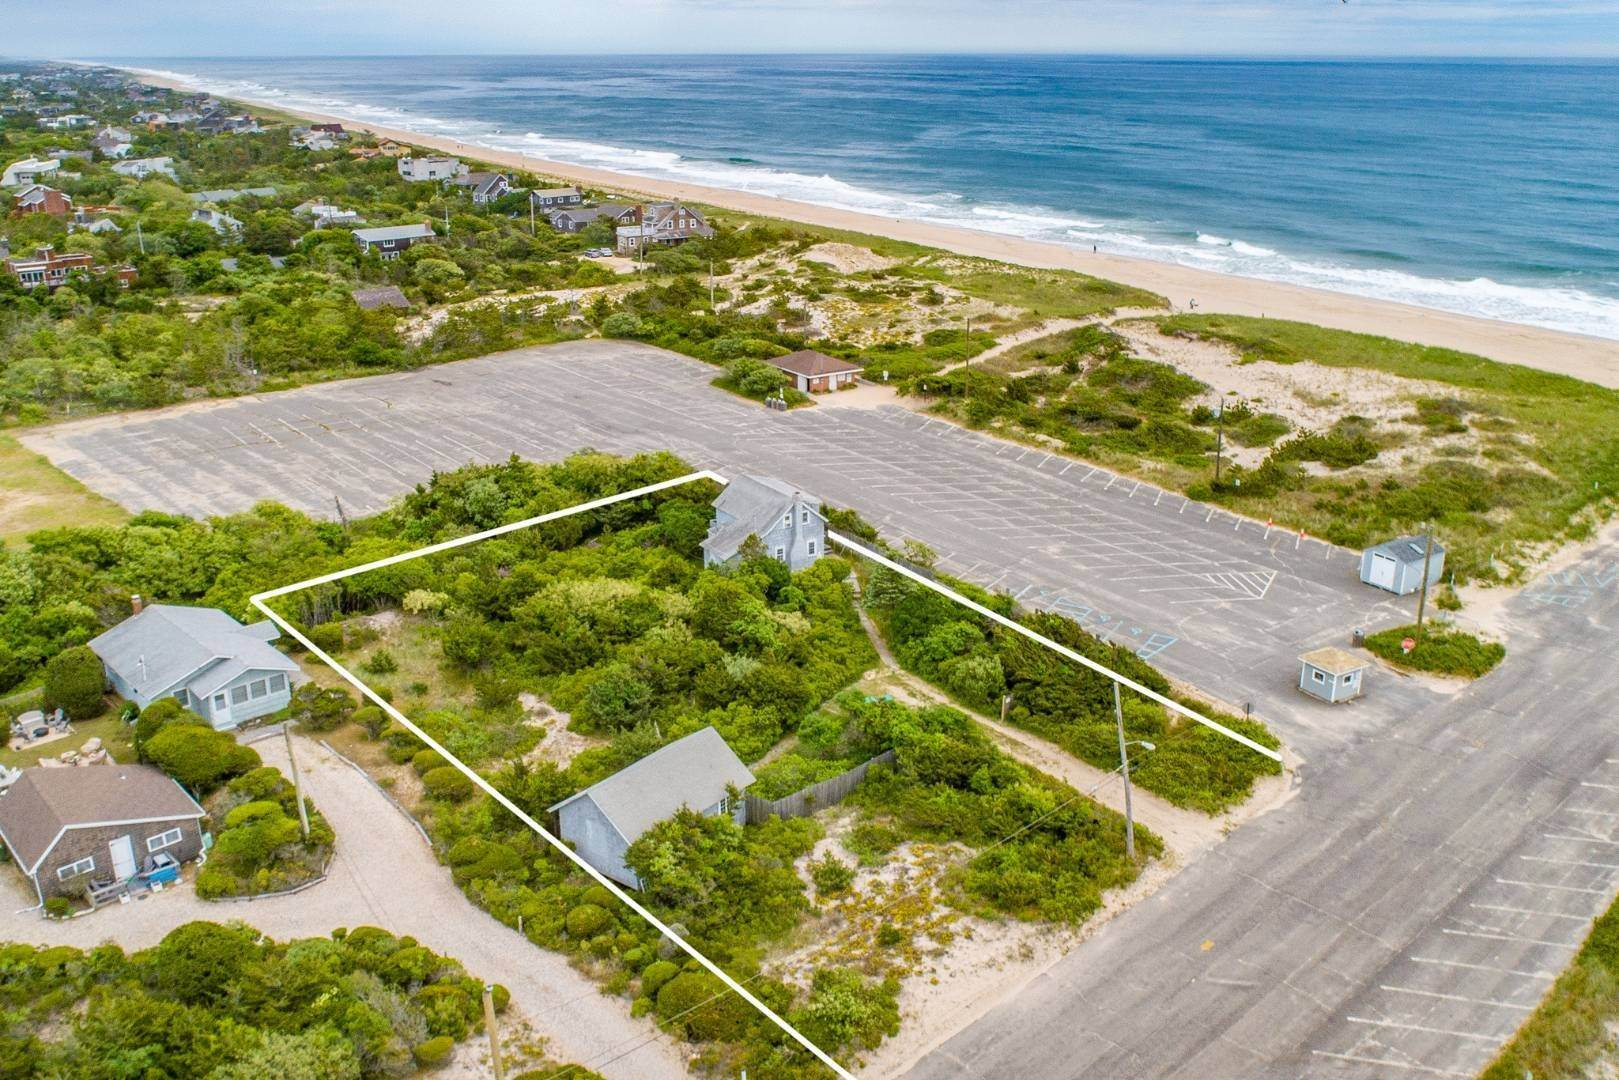 Land for Sale at Amagansett Opportunity Across From The Beach 175 Atlantic Avenue, Amagansett, NY 11930